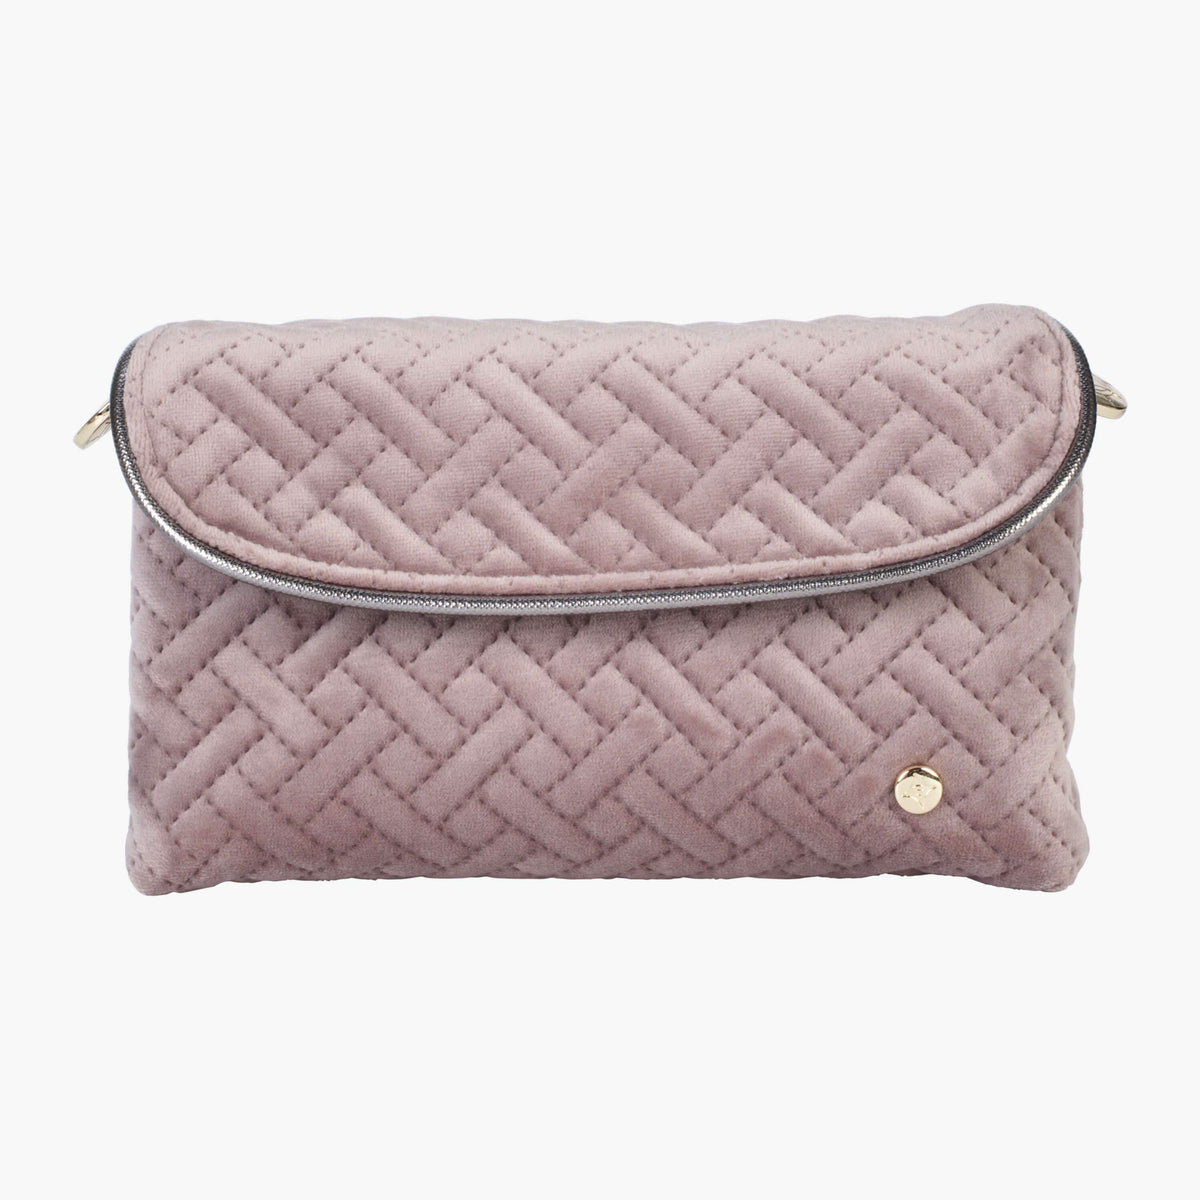 ... Katie Folding Cosmetic Bag Katie Folding Cosmetic in Milan - Dusty Plum  Front View in in ... cff05354d4f7a